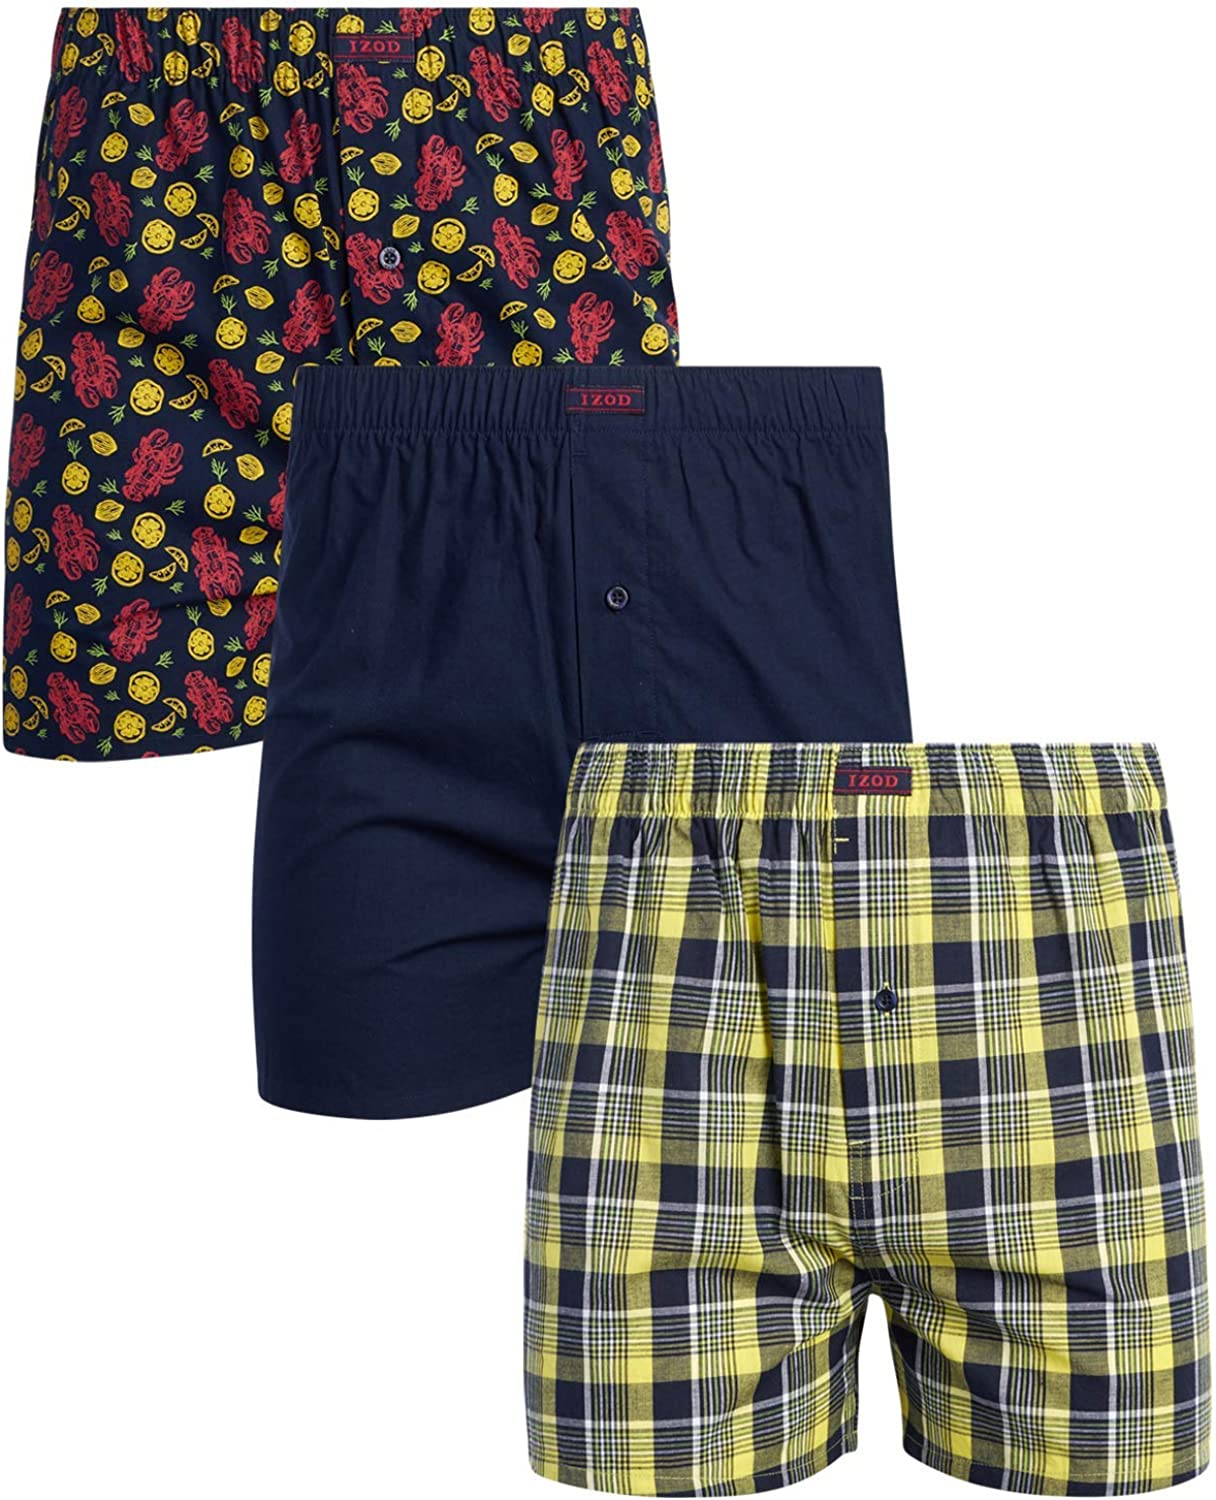 IZOD Men's Underwear – Max 71% OFF Cotton ! Super beauty product restock quality top! with Boxers Functi Woven